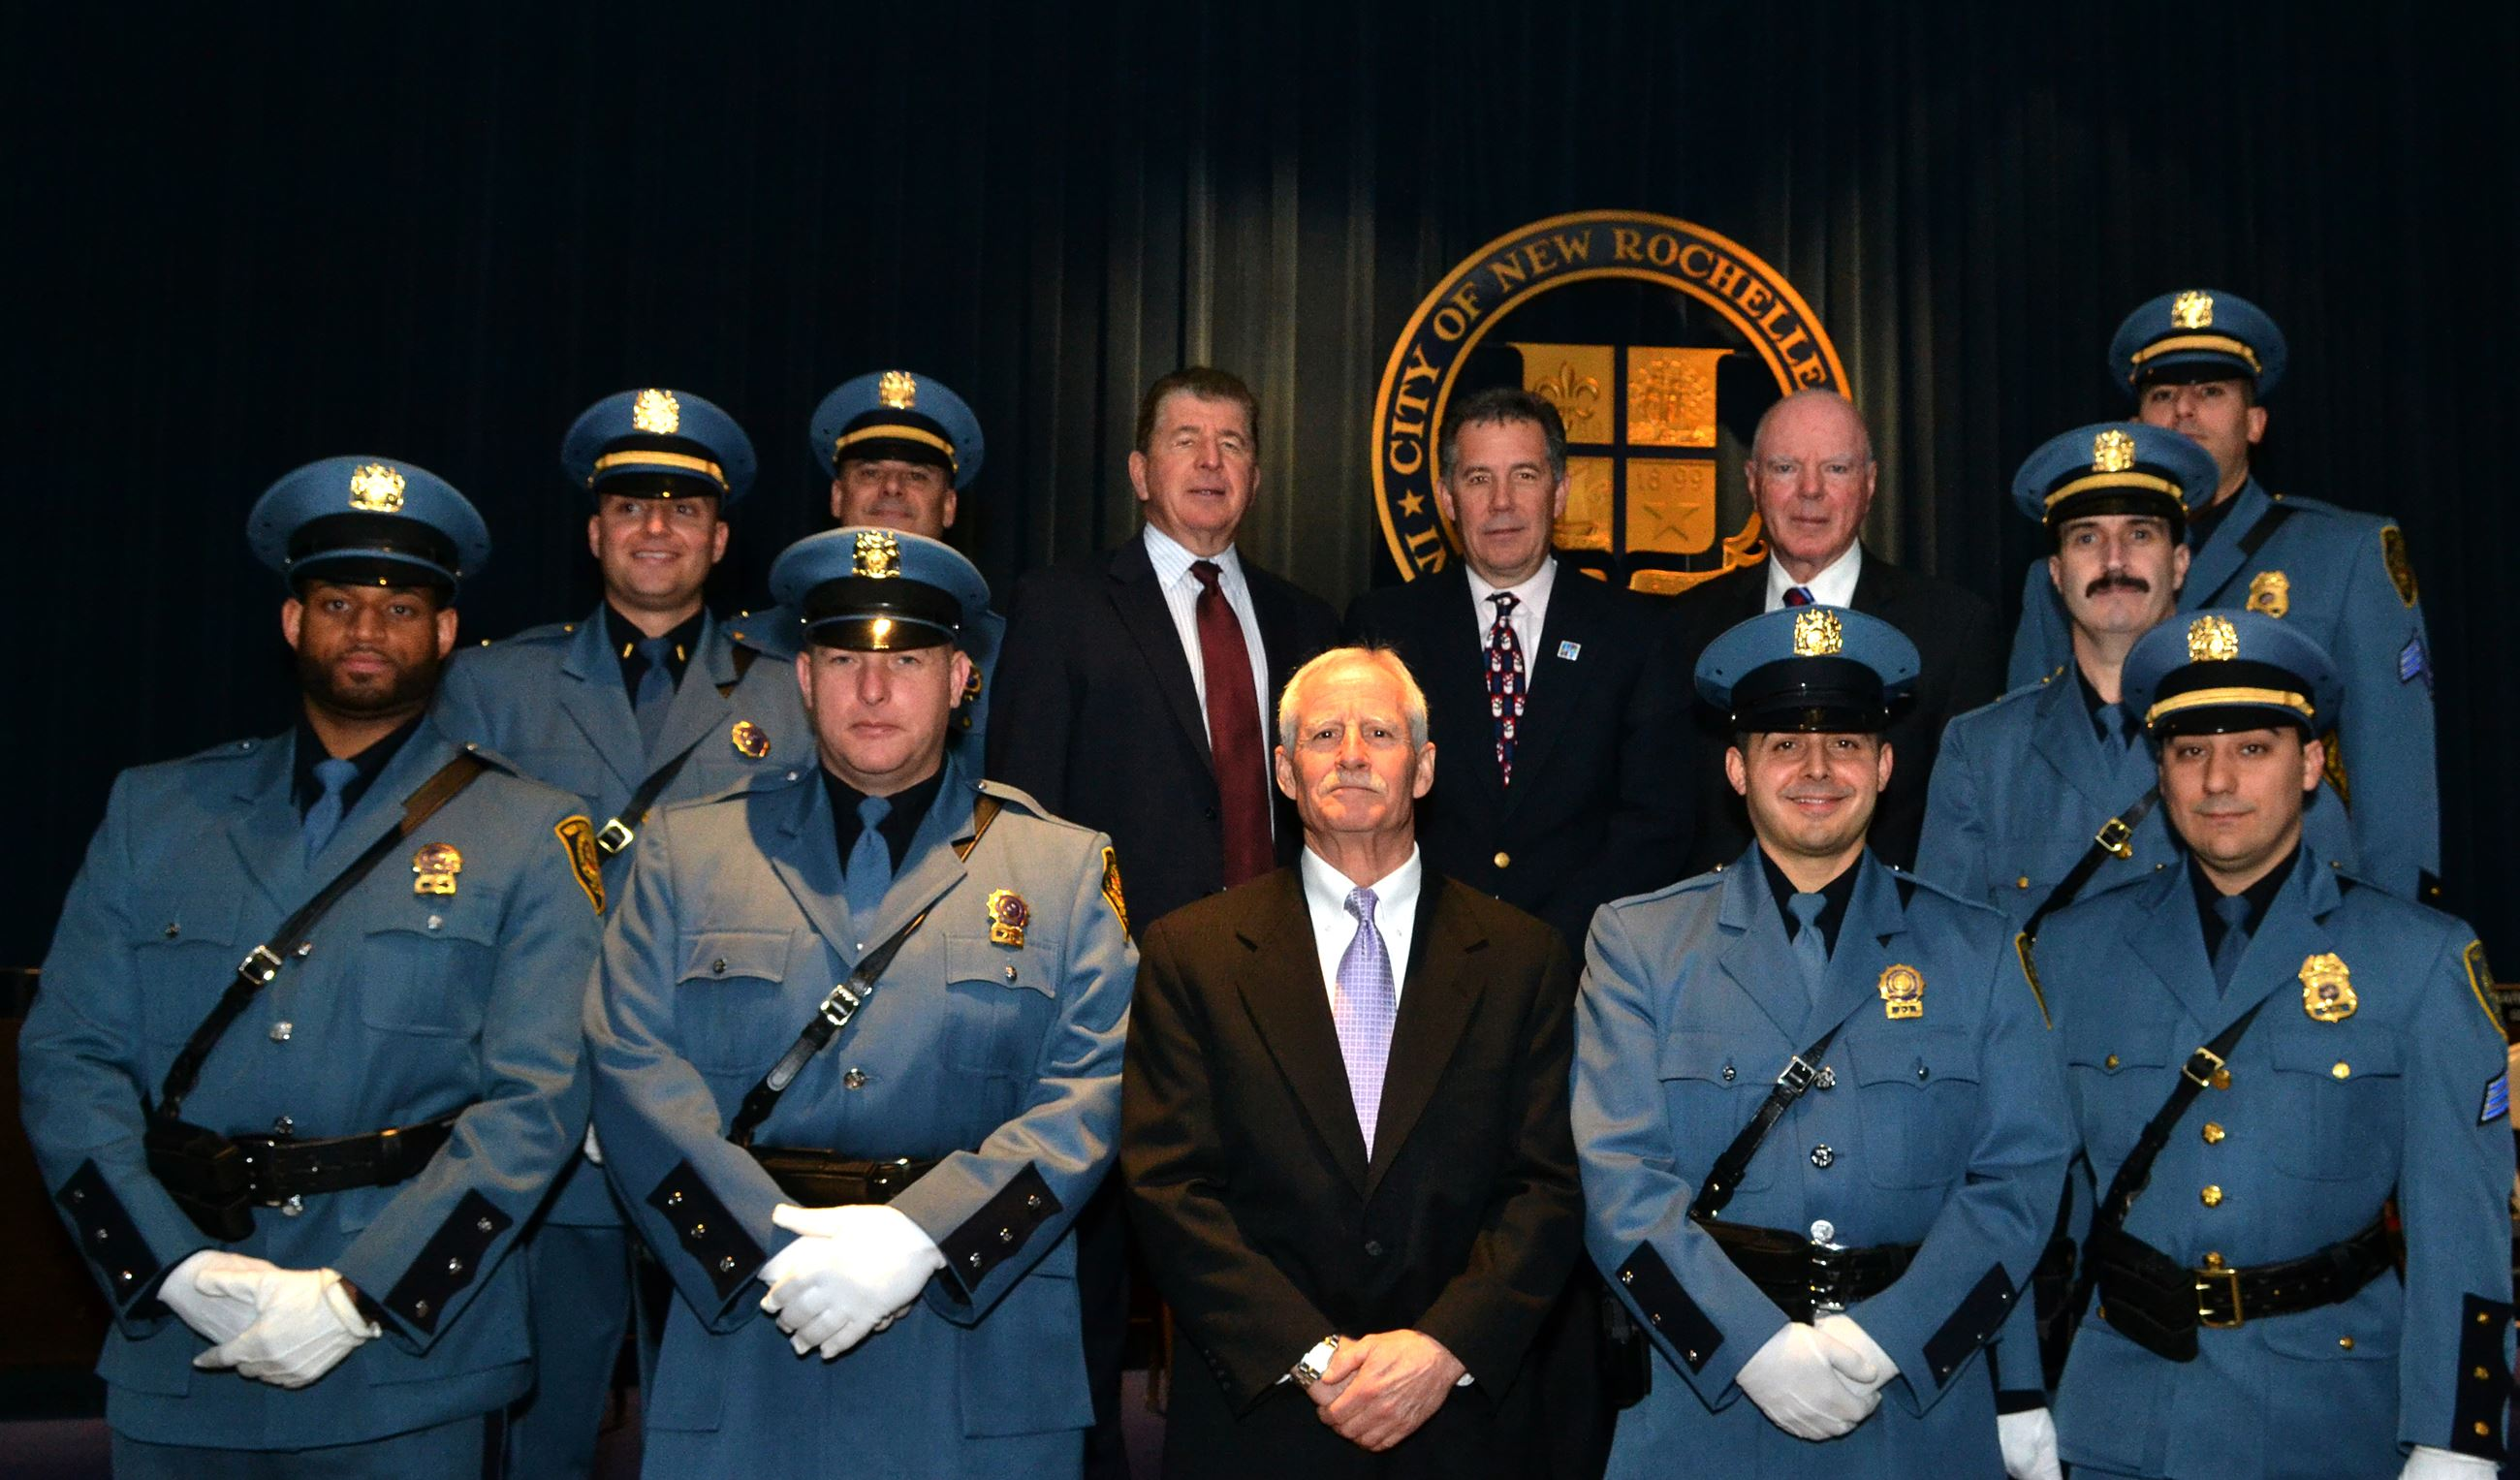 NRPD Promotional Ceremony